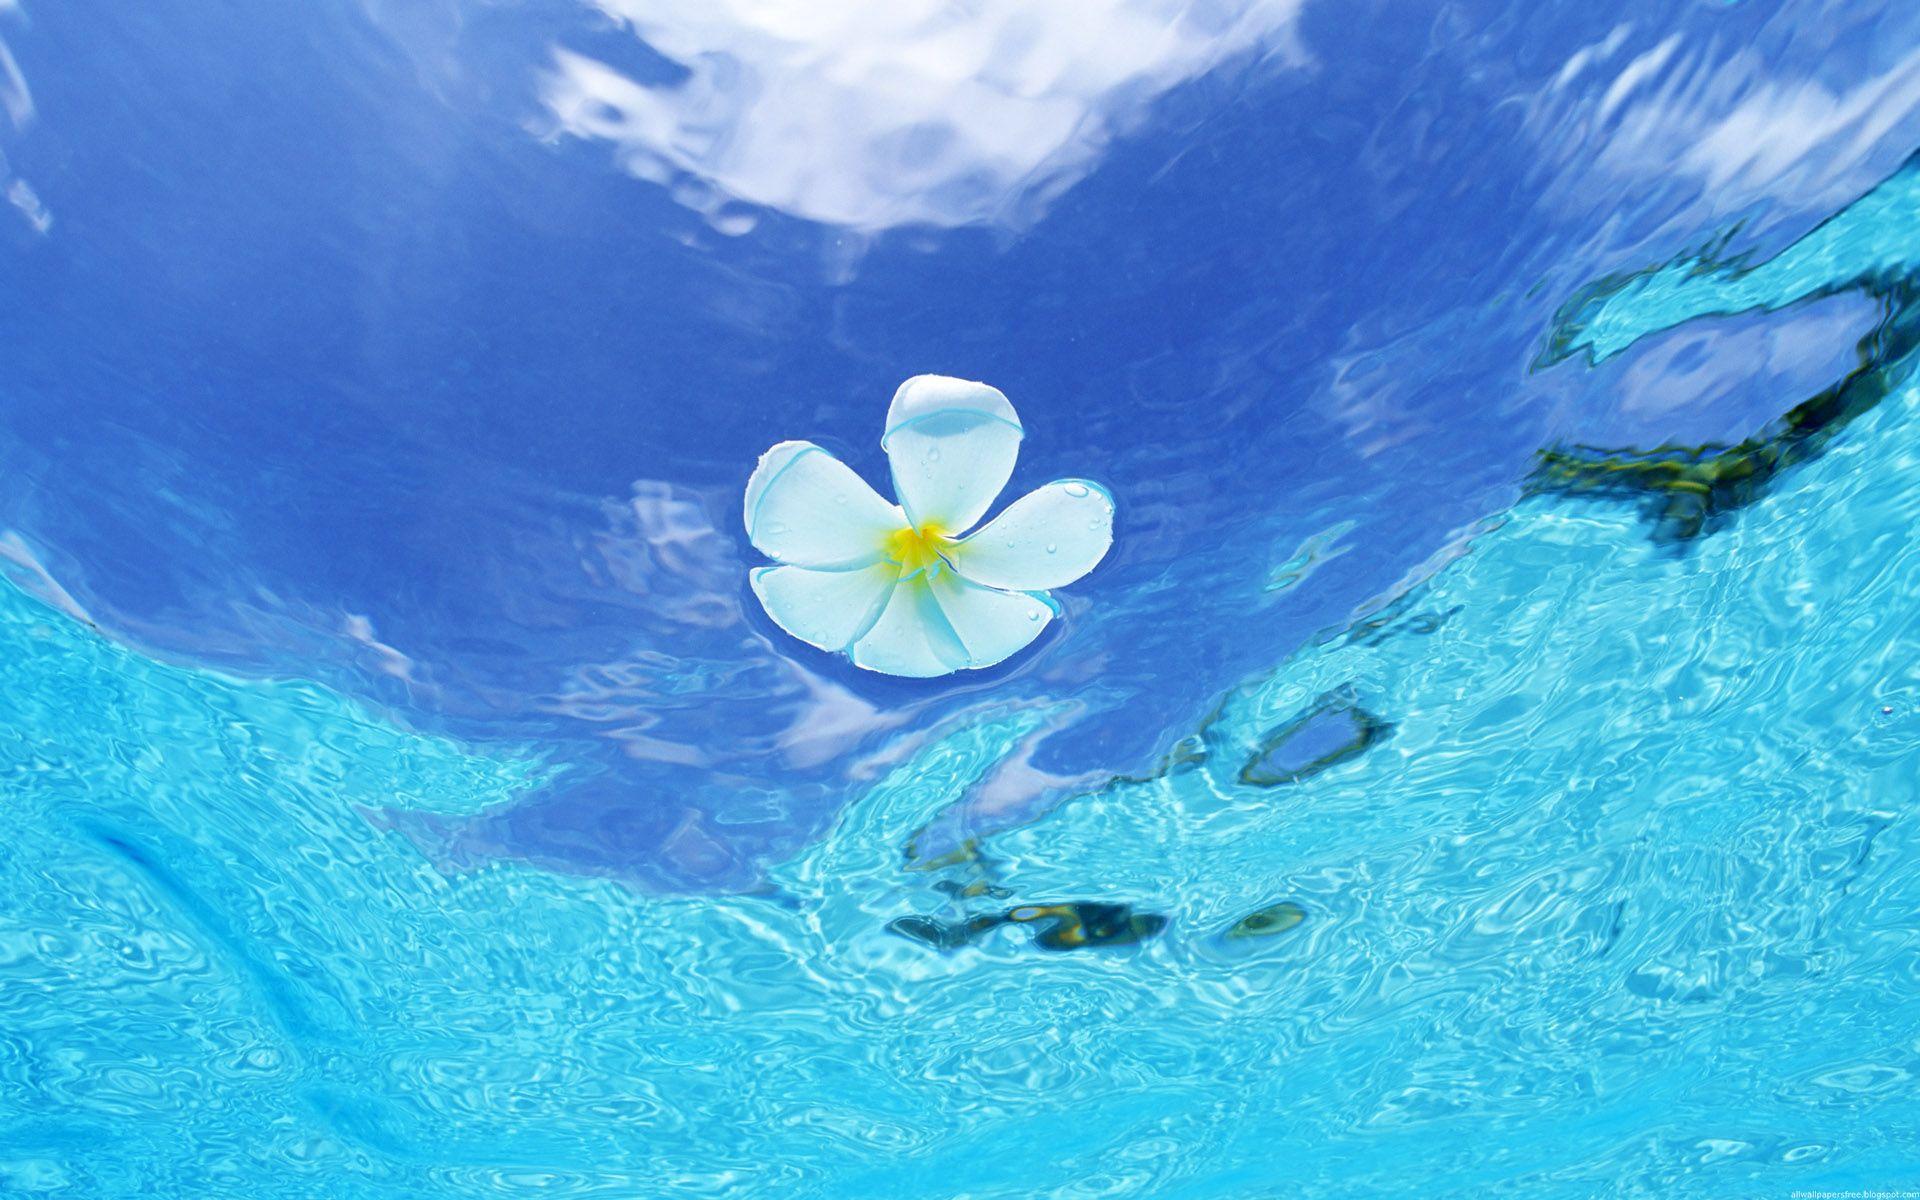 water flowers white flowers plumeria wallpaper 1920x1200